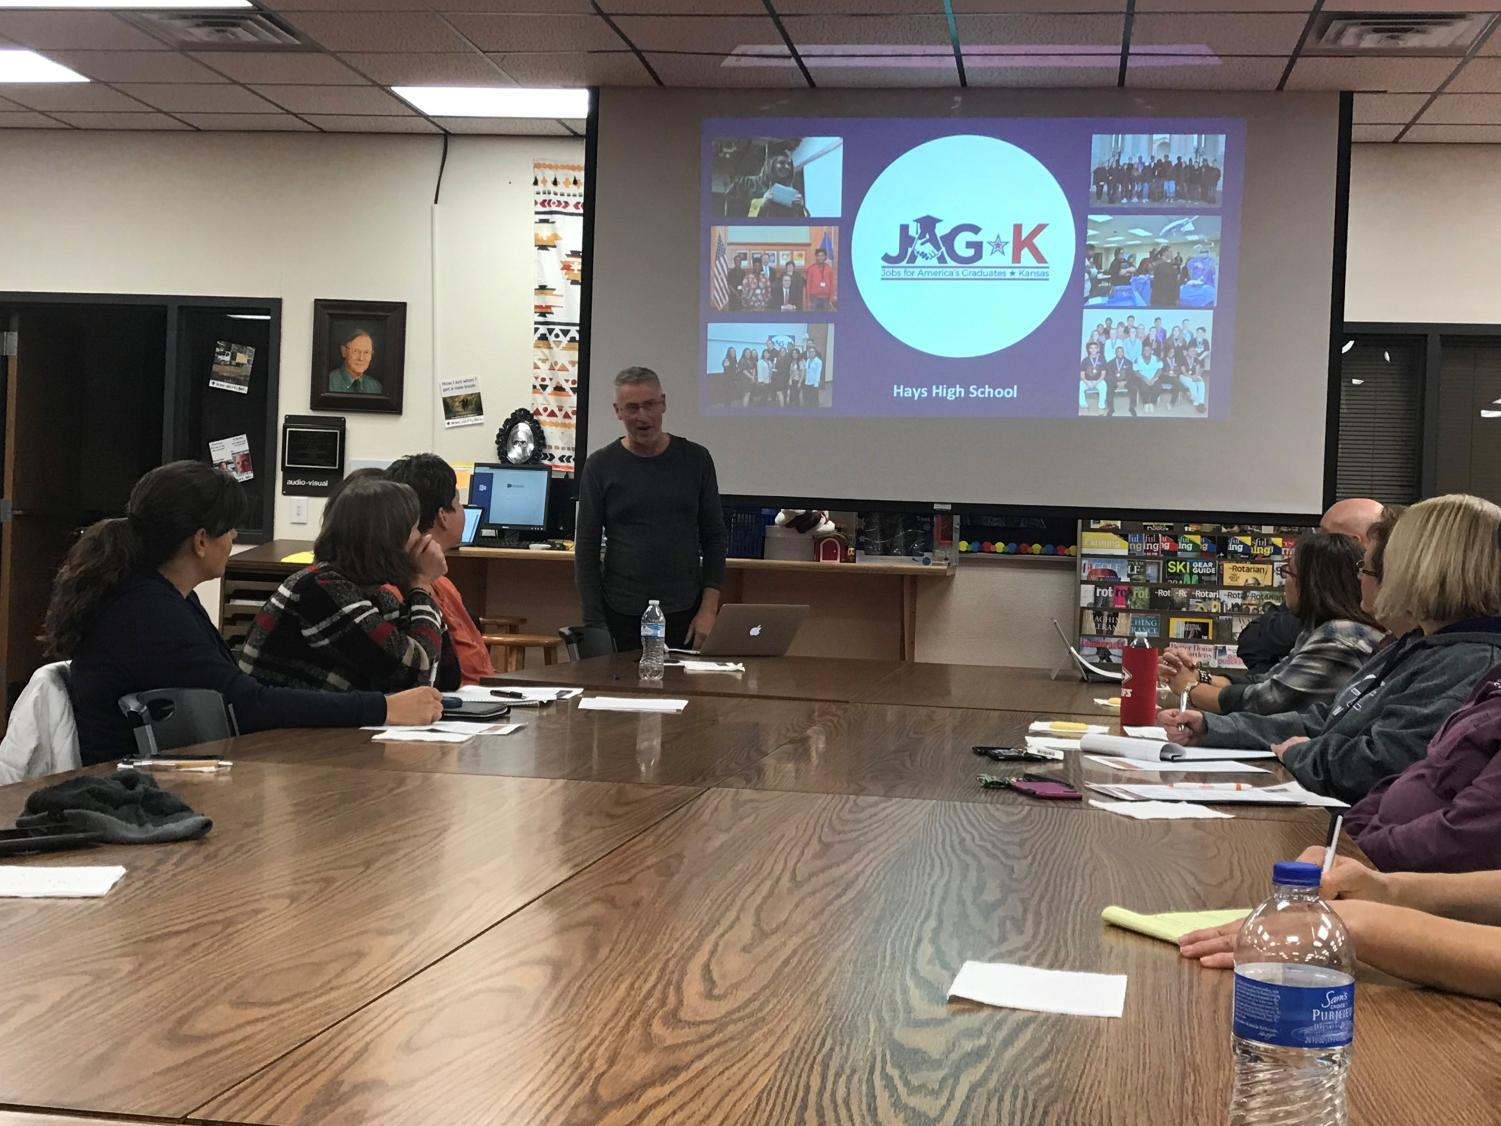 At the Site Council meeting, instructor Johnny Matlock introduced his program, JAG-K.